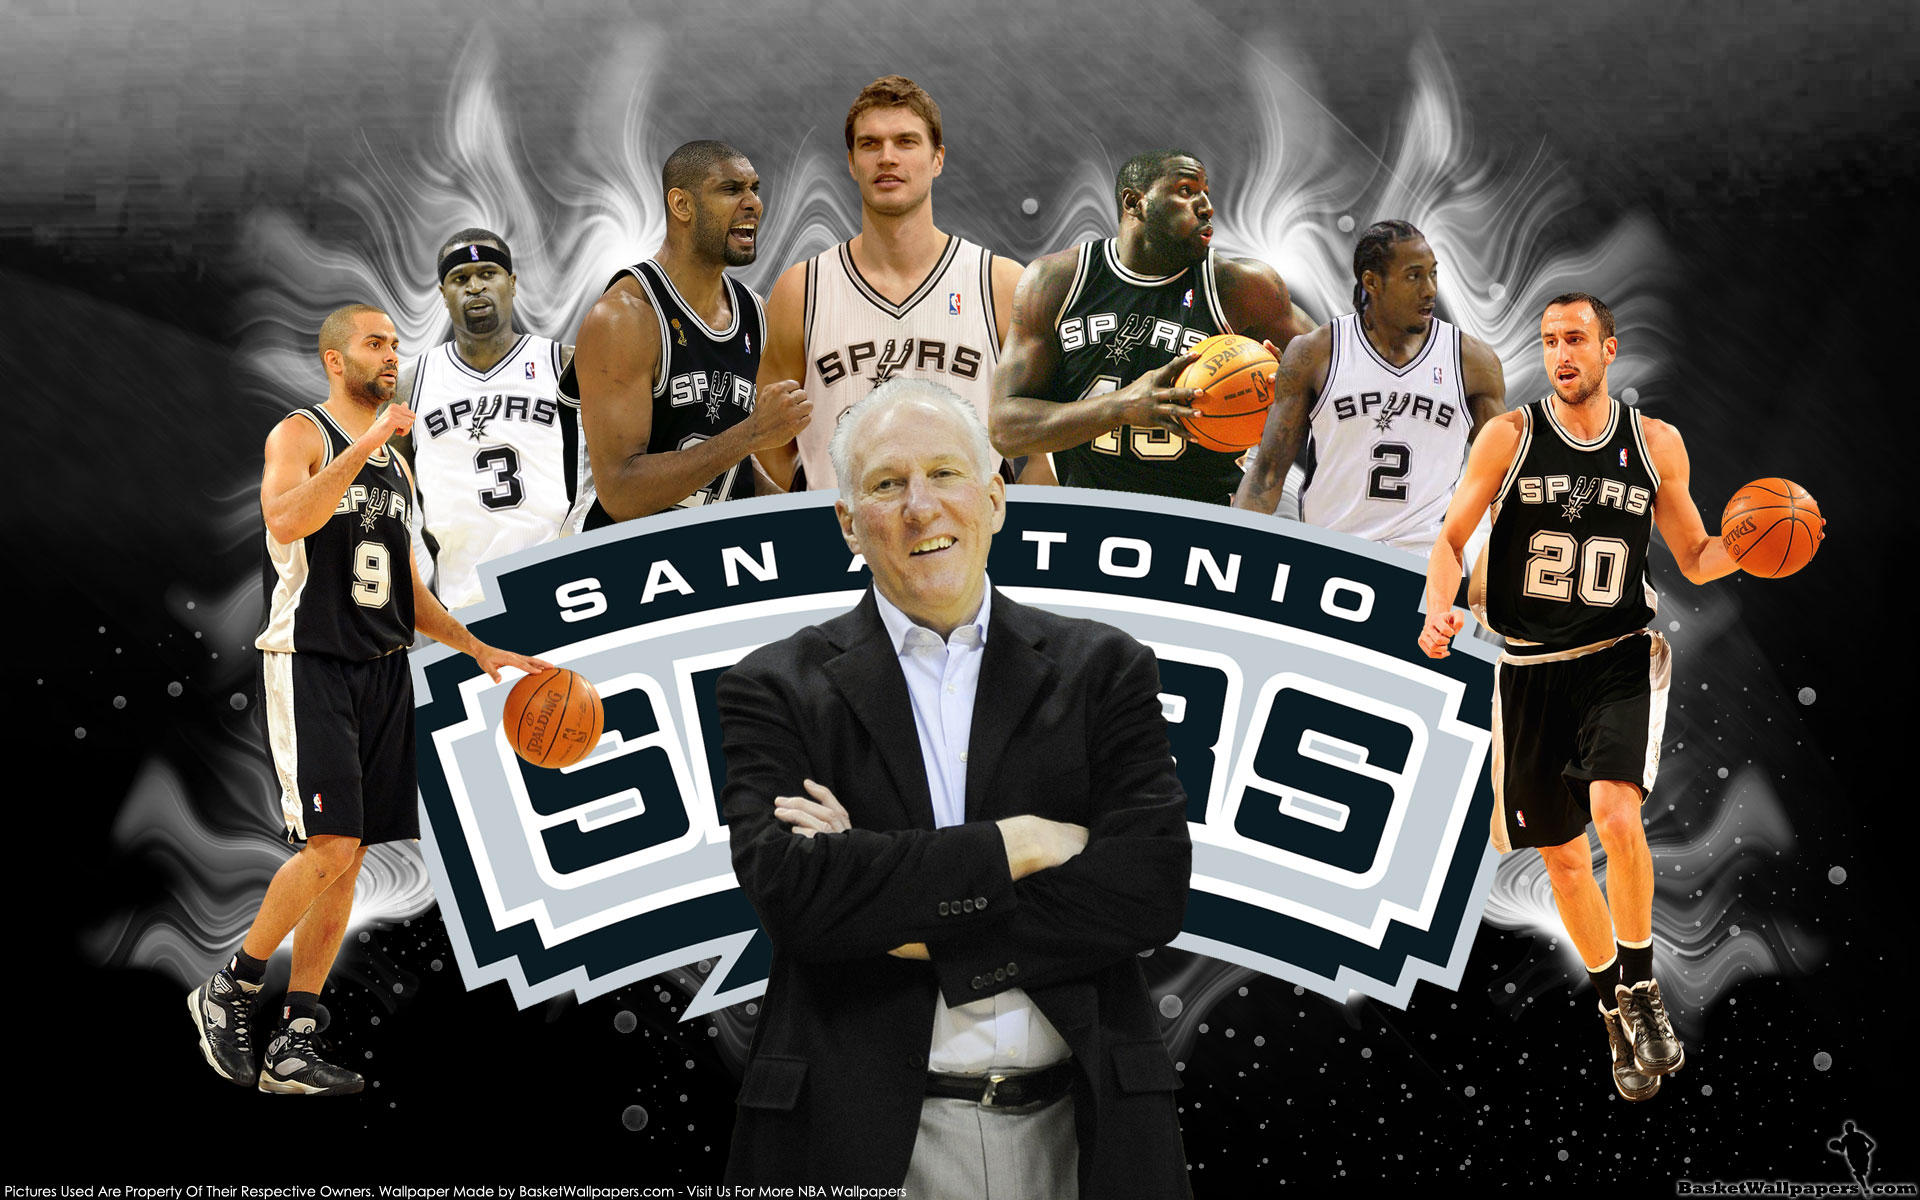 2013 NBA Finals: WC Champions San Antonio Spurs vs. EC Champions Miami